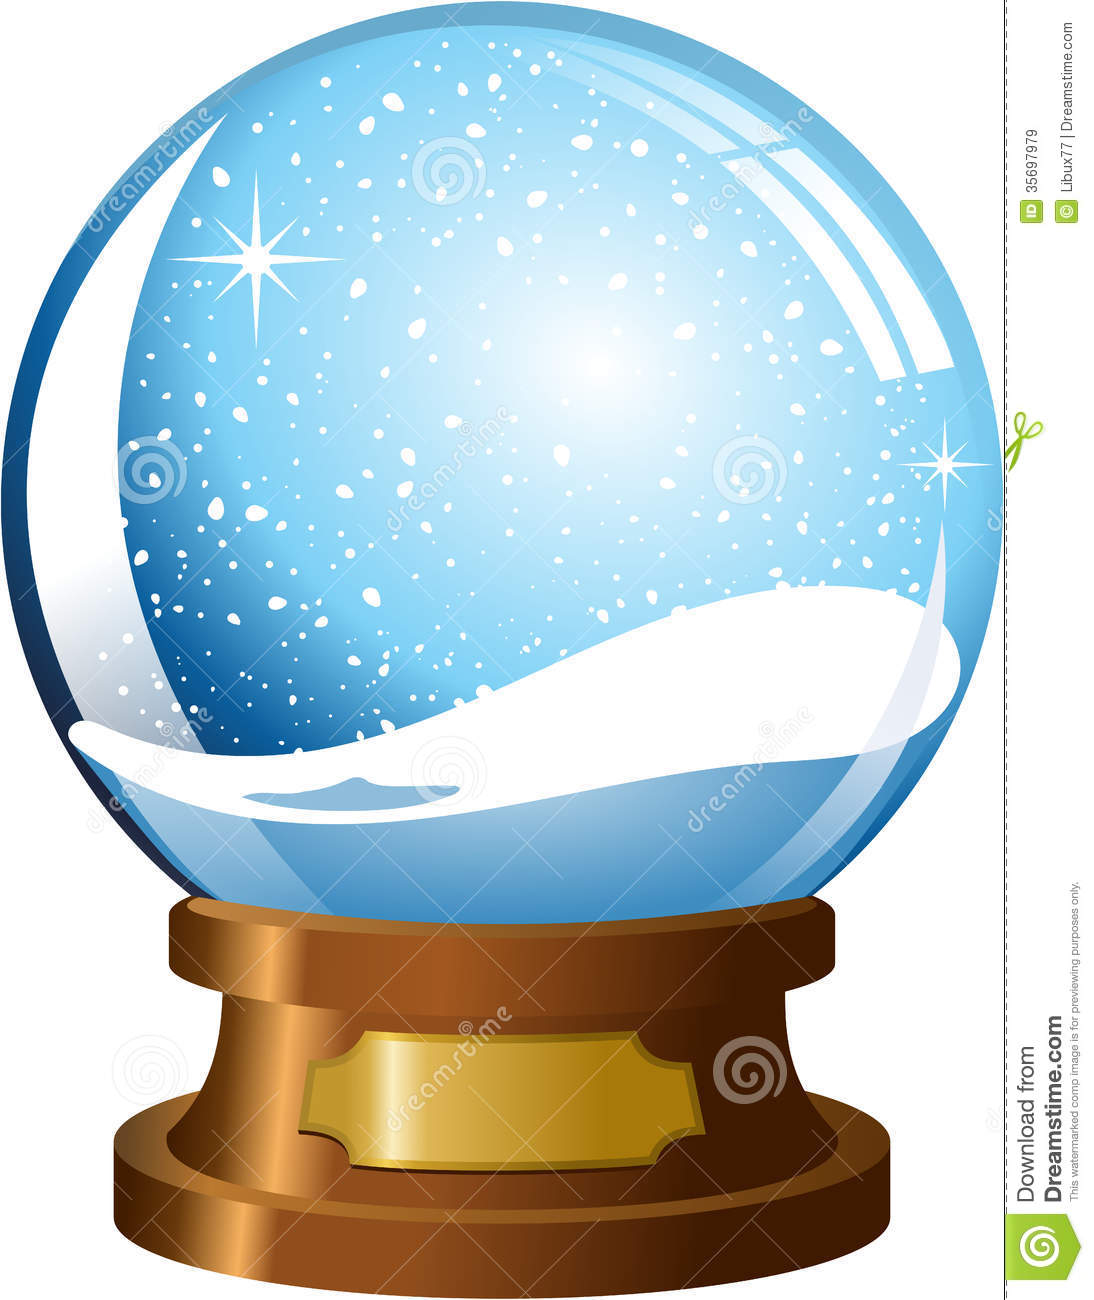 christmas snow globe clipart at getdrawings com free for personal rh getdrawings com snowman snow globe clipart empty snow globe clipart